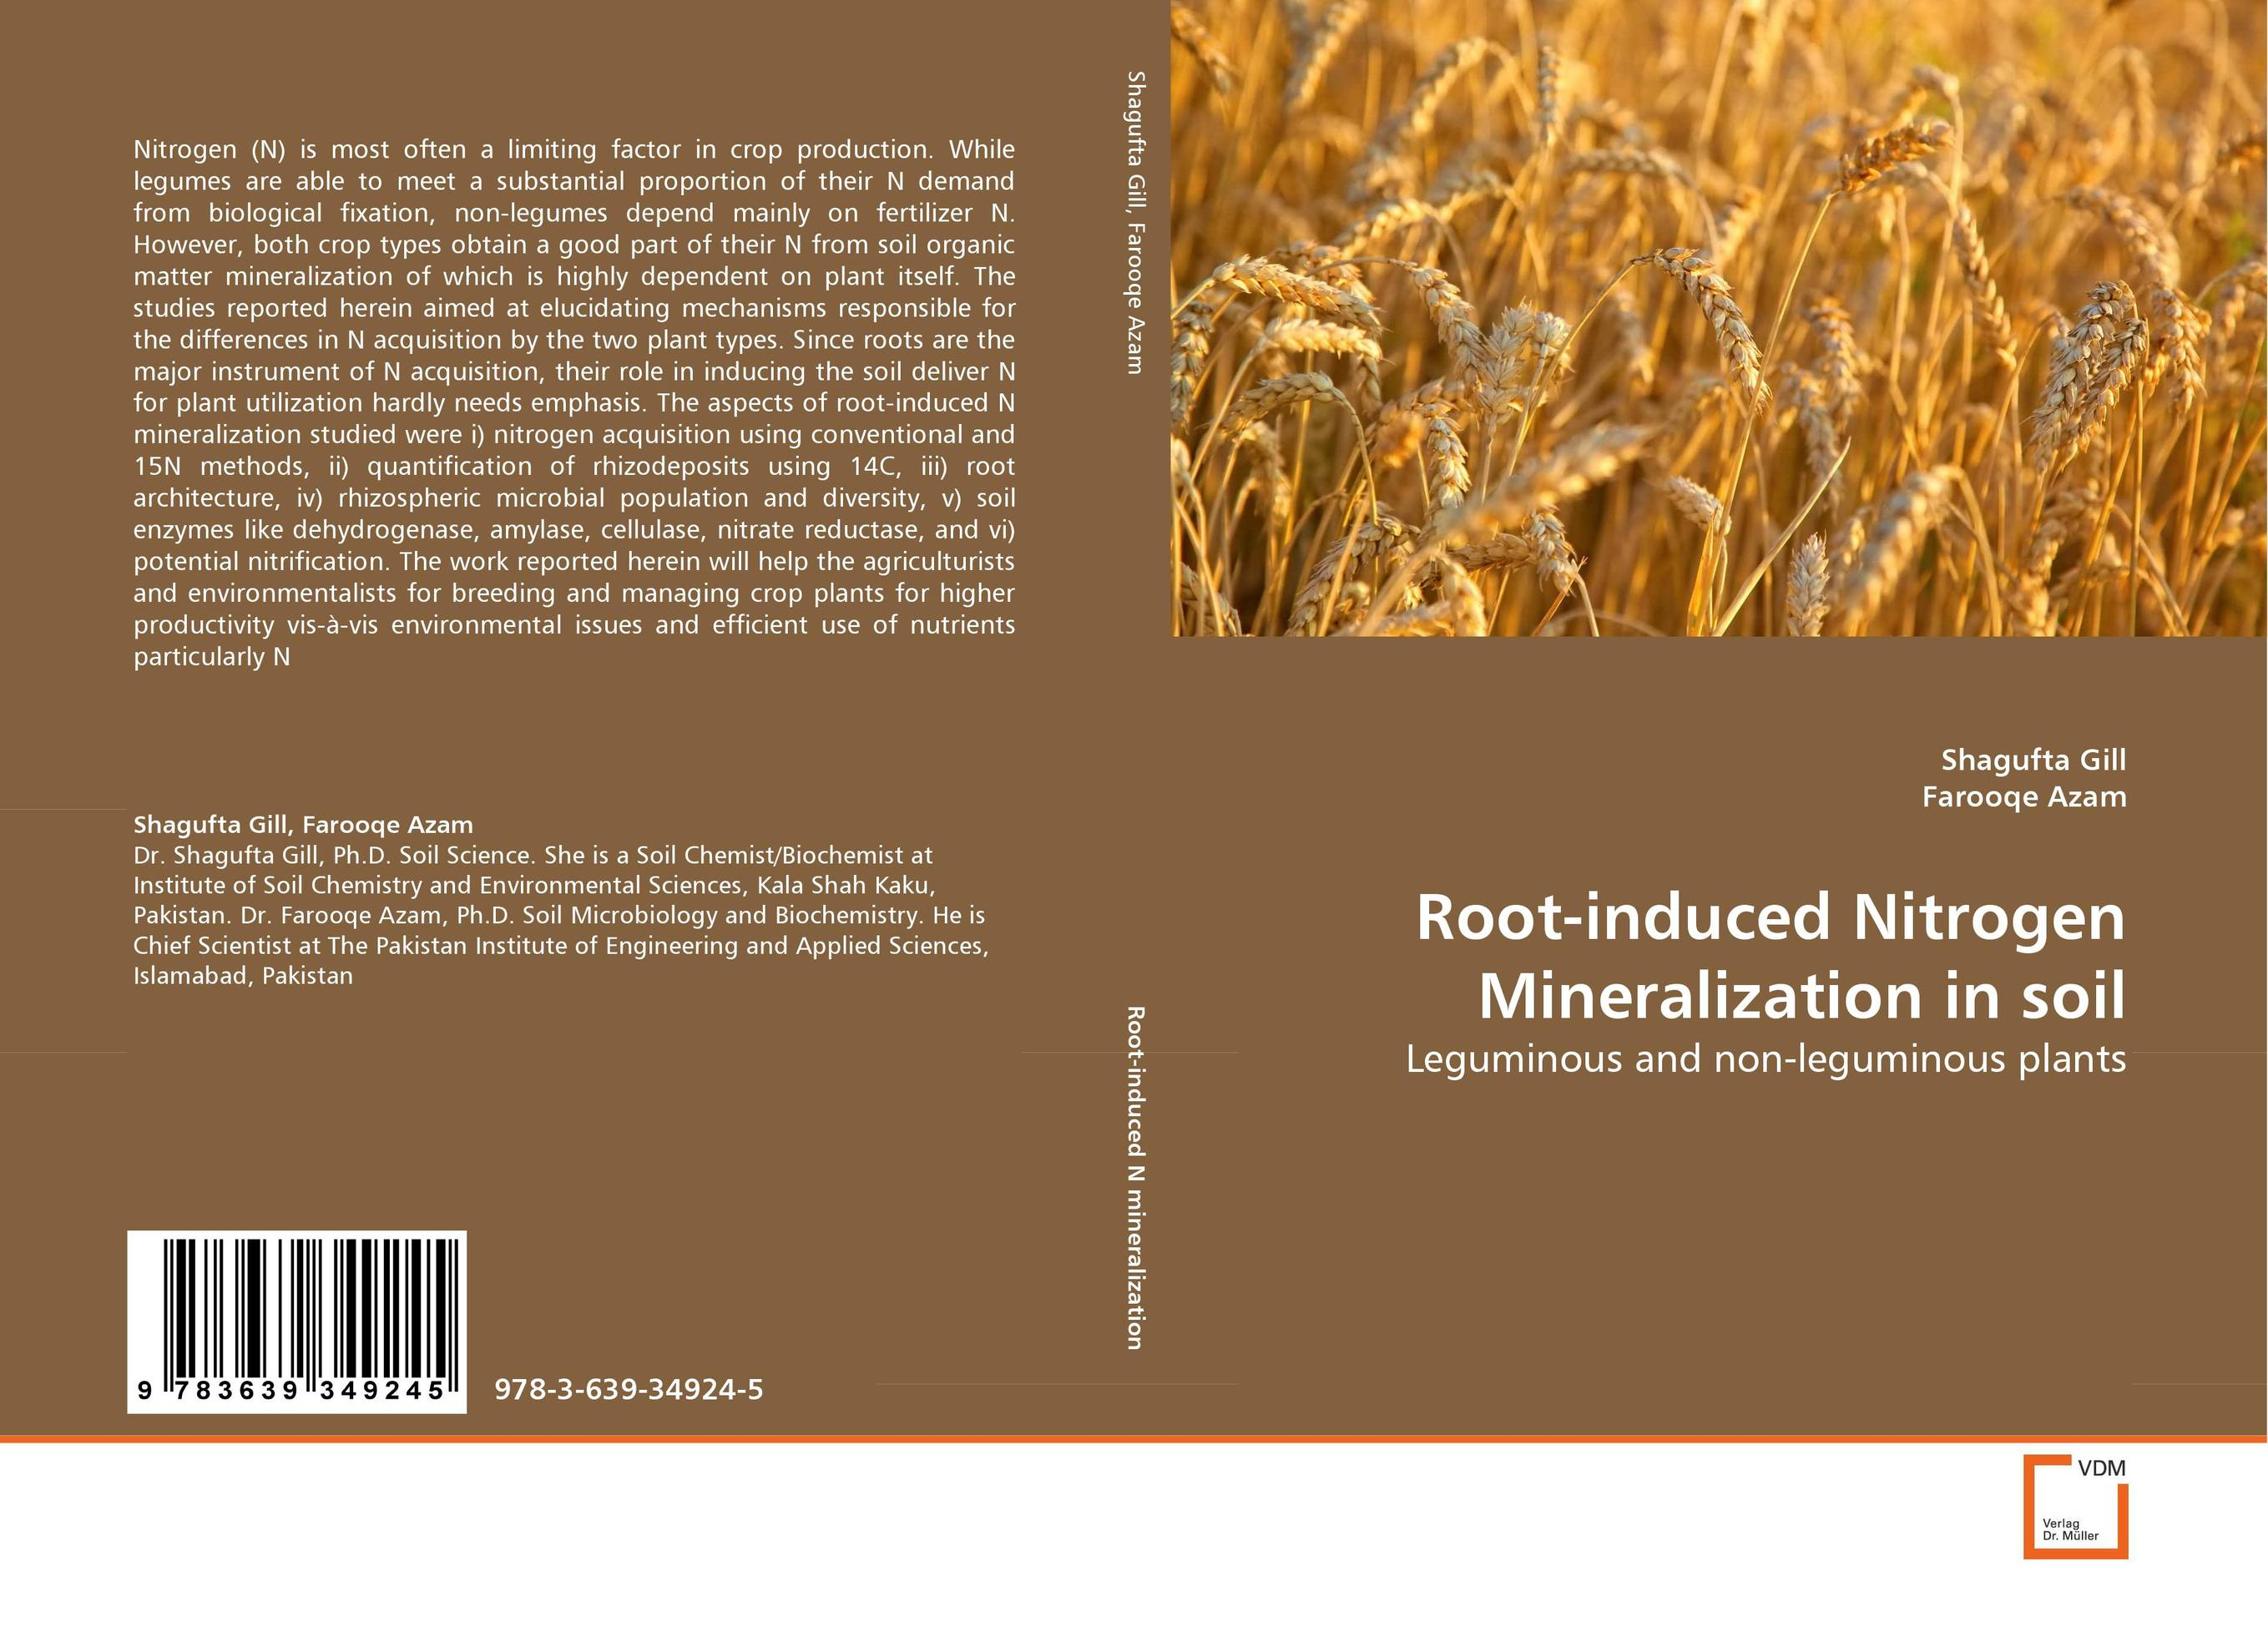 Root-induced Nitrogen Mineralization in soil the teeth with root canal students to practice root canal preparation and filling actually